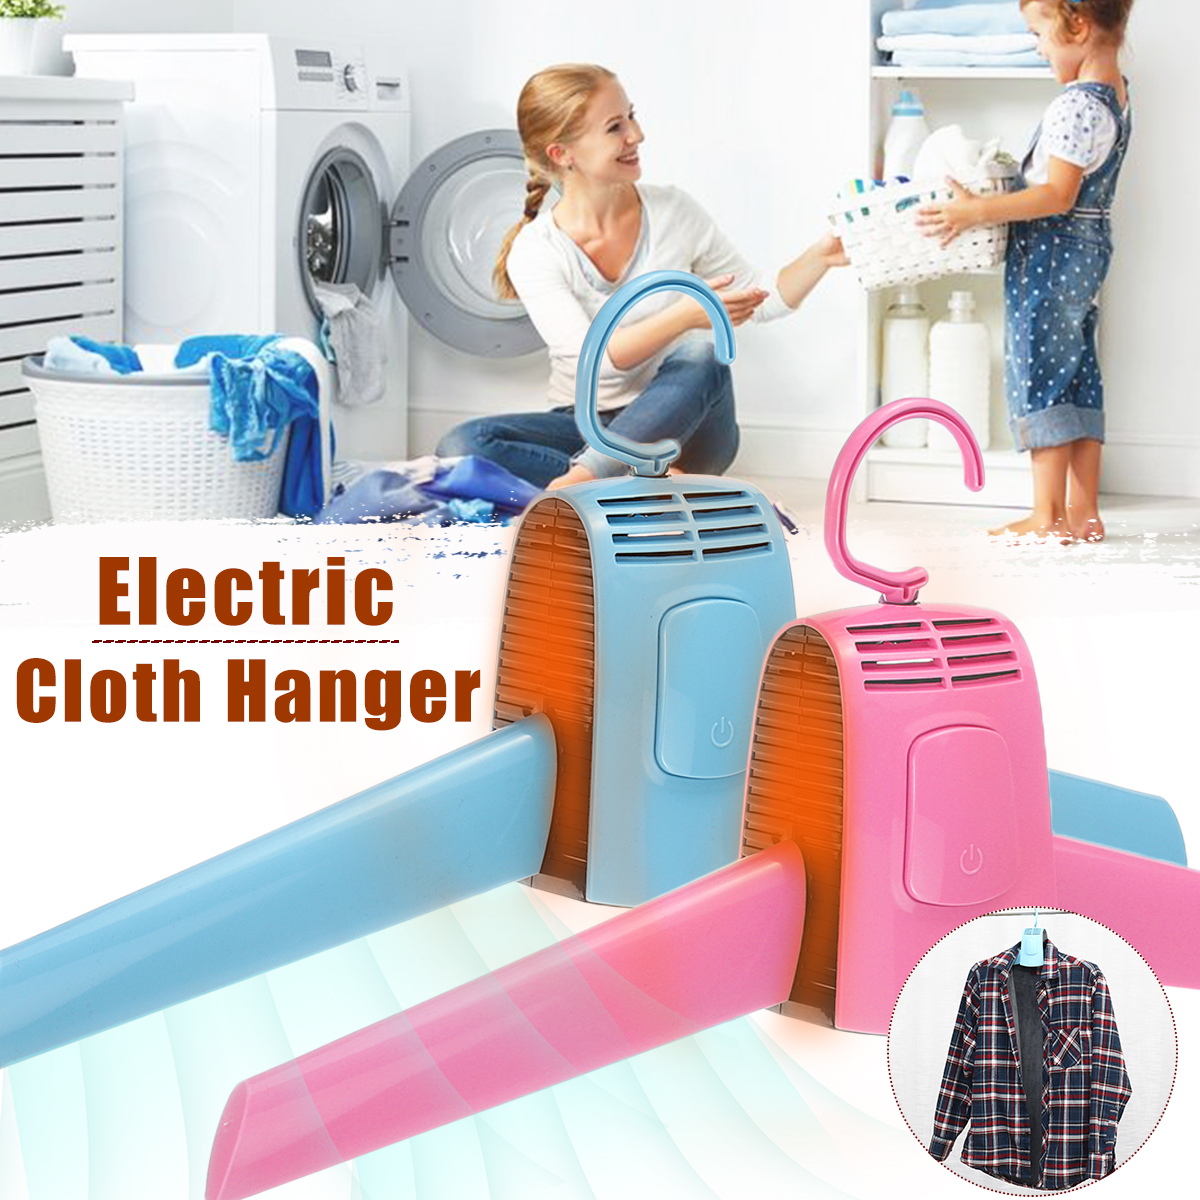 110V-220V Electric Clothes Hanger Portable Drying Cloth Machine Rack Home Indoor Dorms Dryer Shoes Clothes Hot Cold Rack